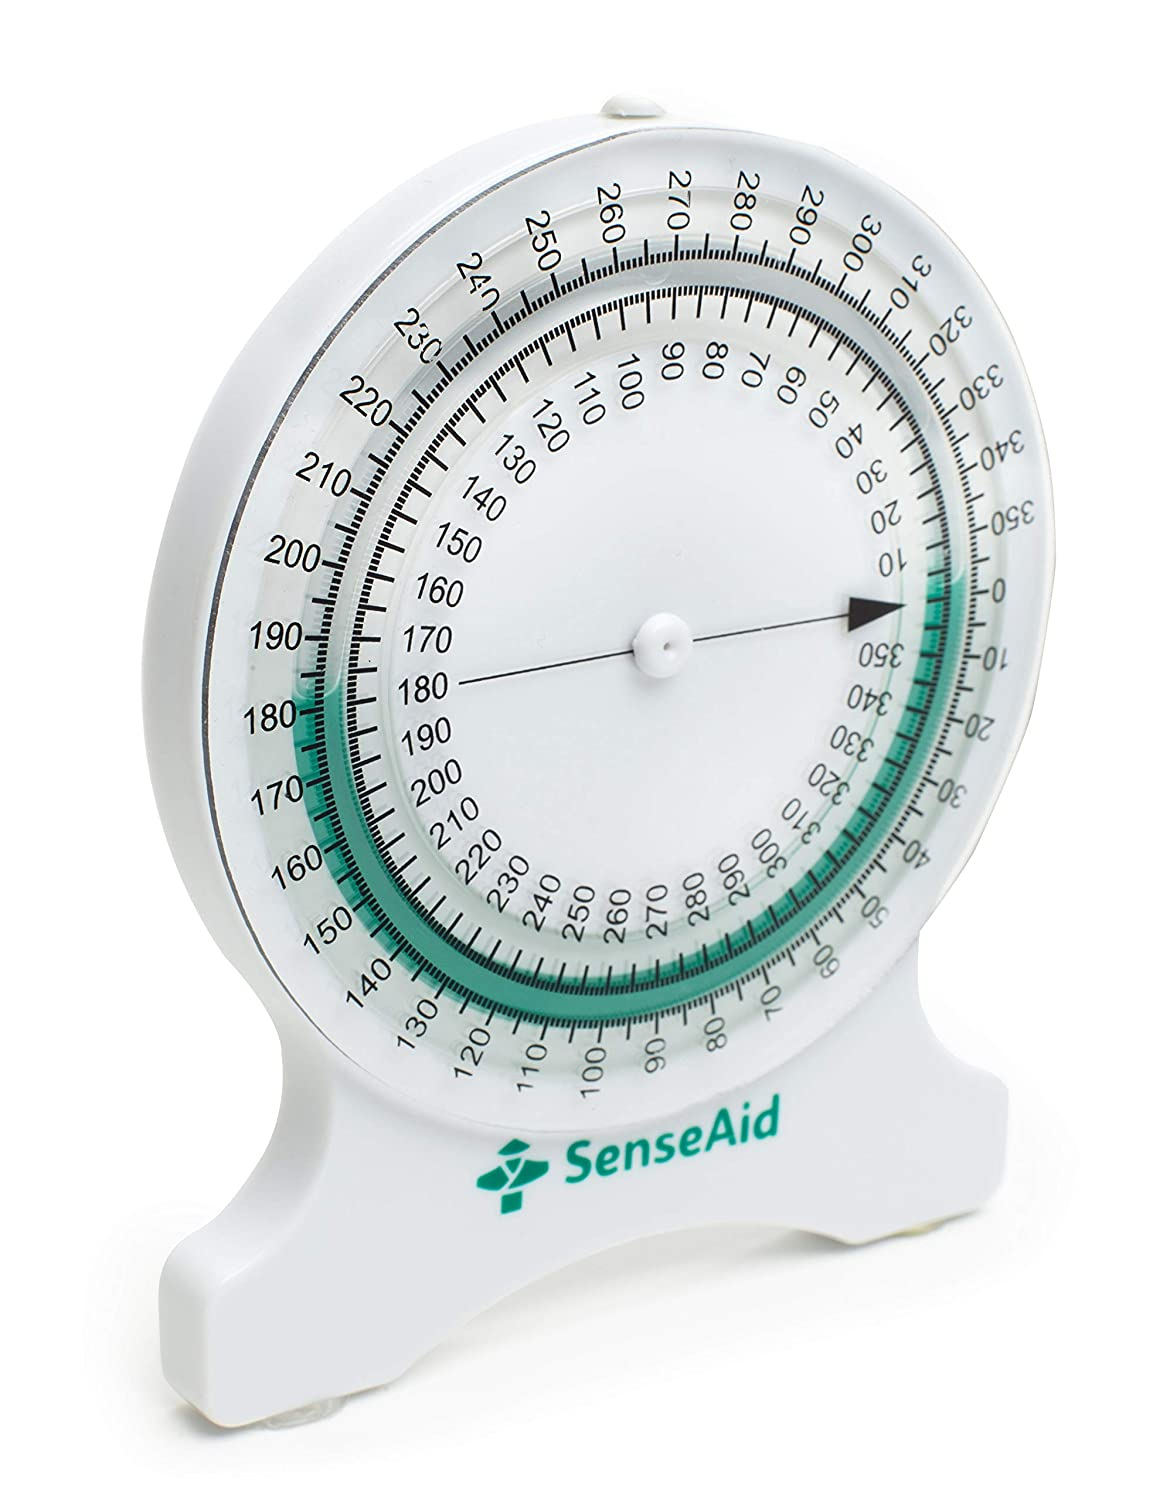 Inclinometer for Physical Therapy | No-Leak PT Inclinometer for Range of Motion (ROM) Measurements by SenseAid. for Students and Professionals